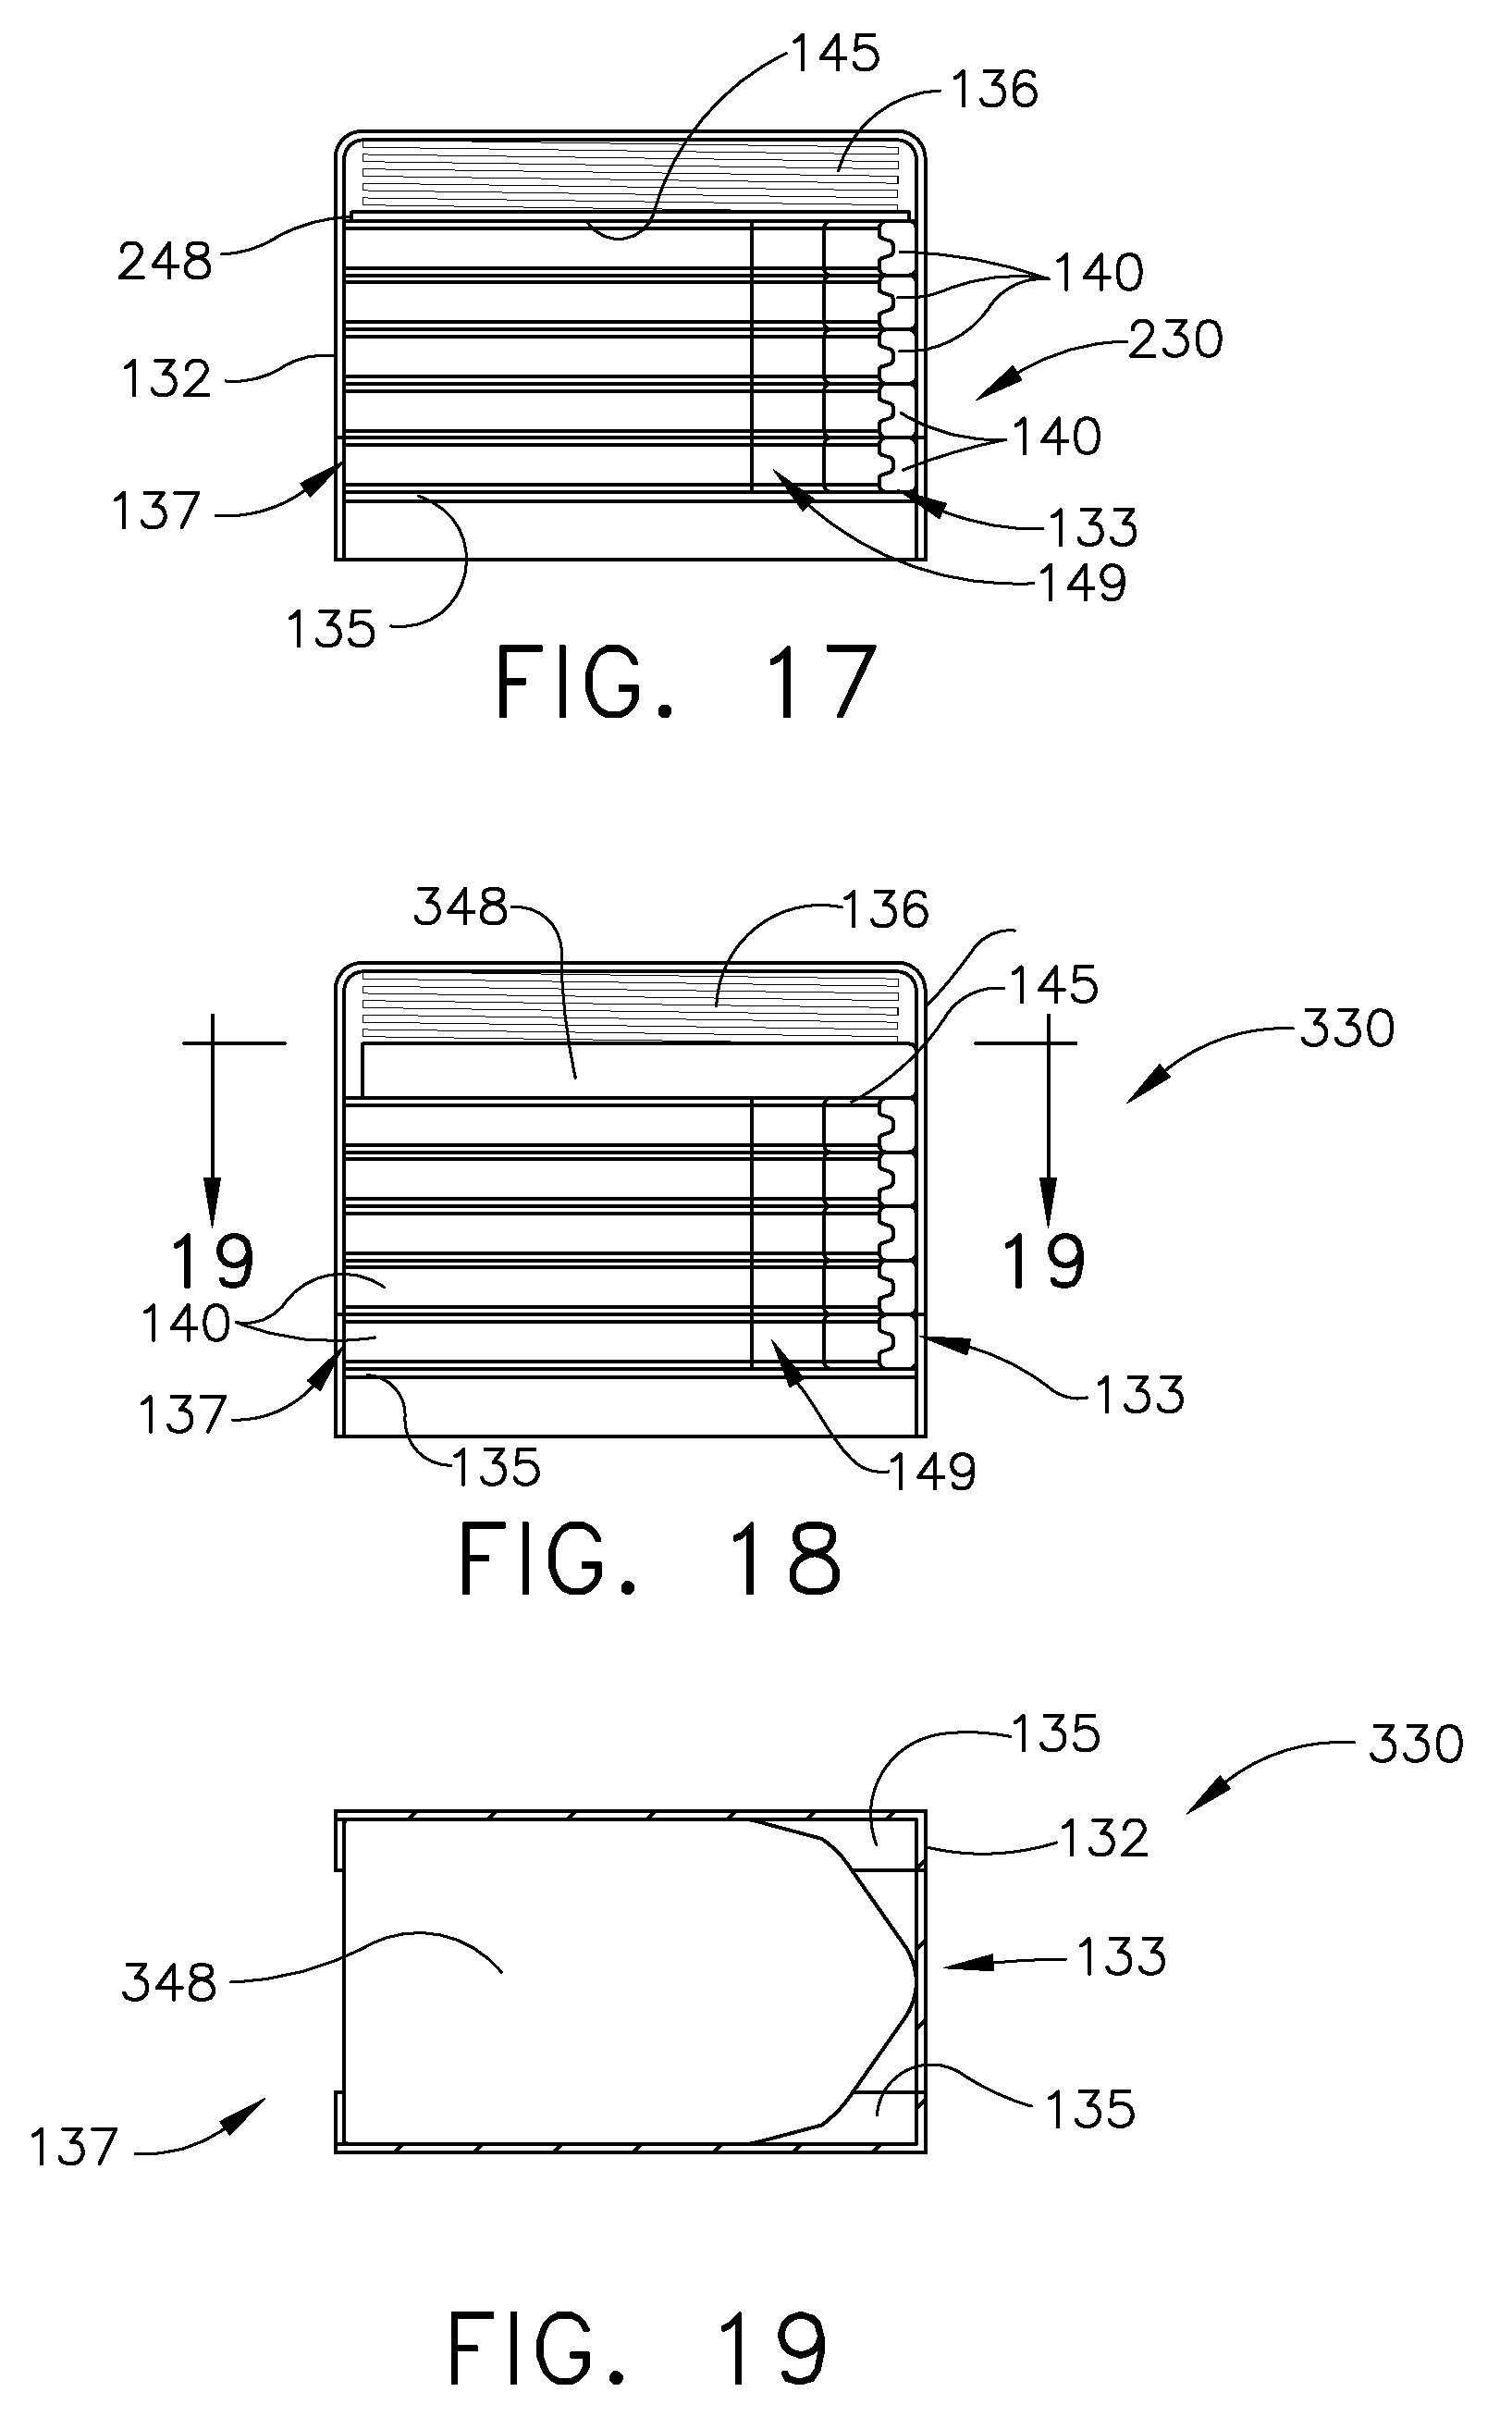 Gear Shift Diagram Us B2 Reinforced Battery For A Surgical